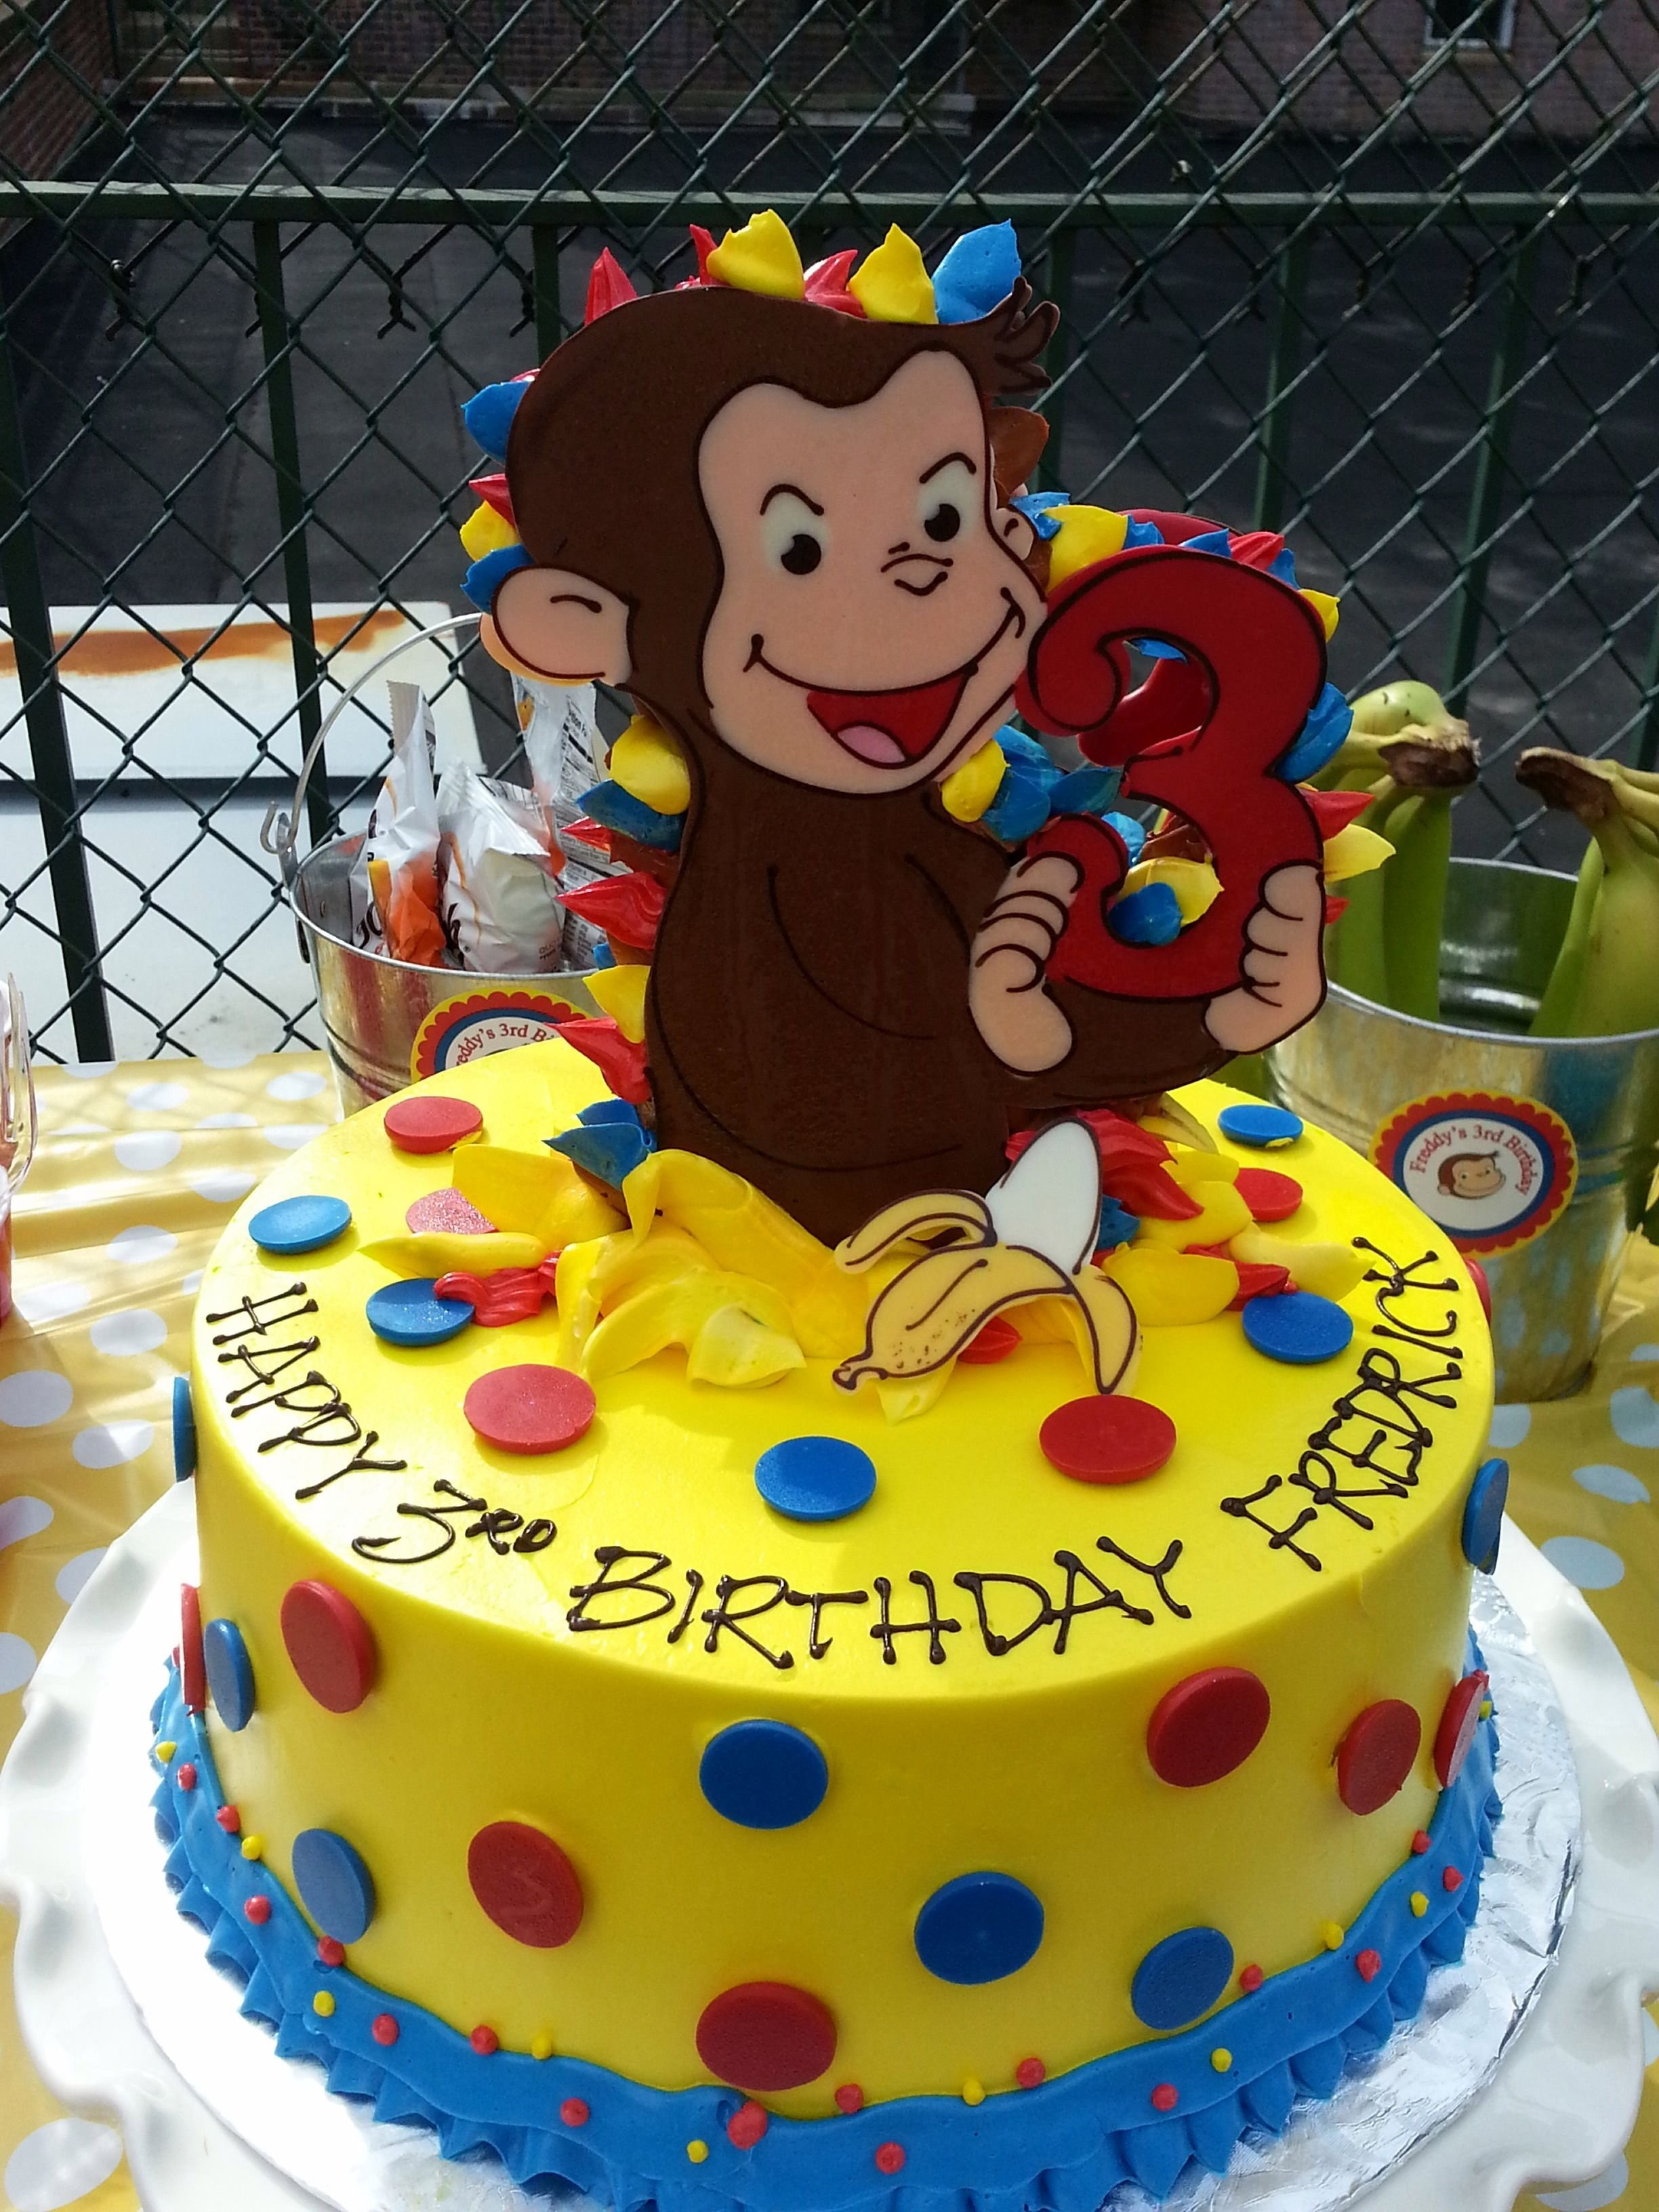 10 Famous Curious George Birthday Cake Ideas curious george birthday cakeriviera bakehouse birthdays 2021